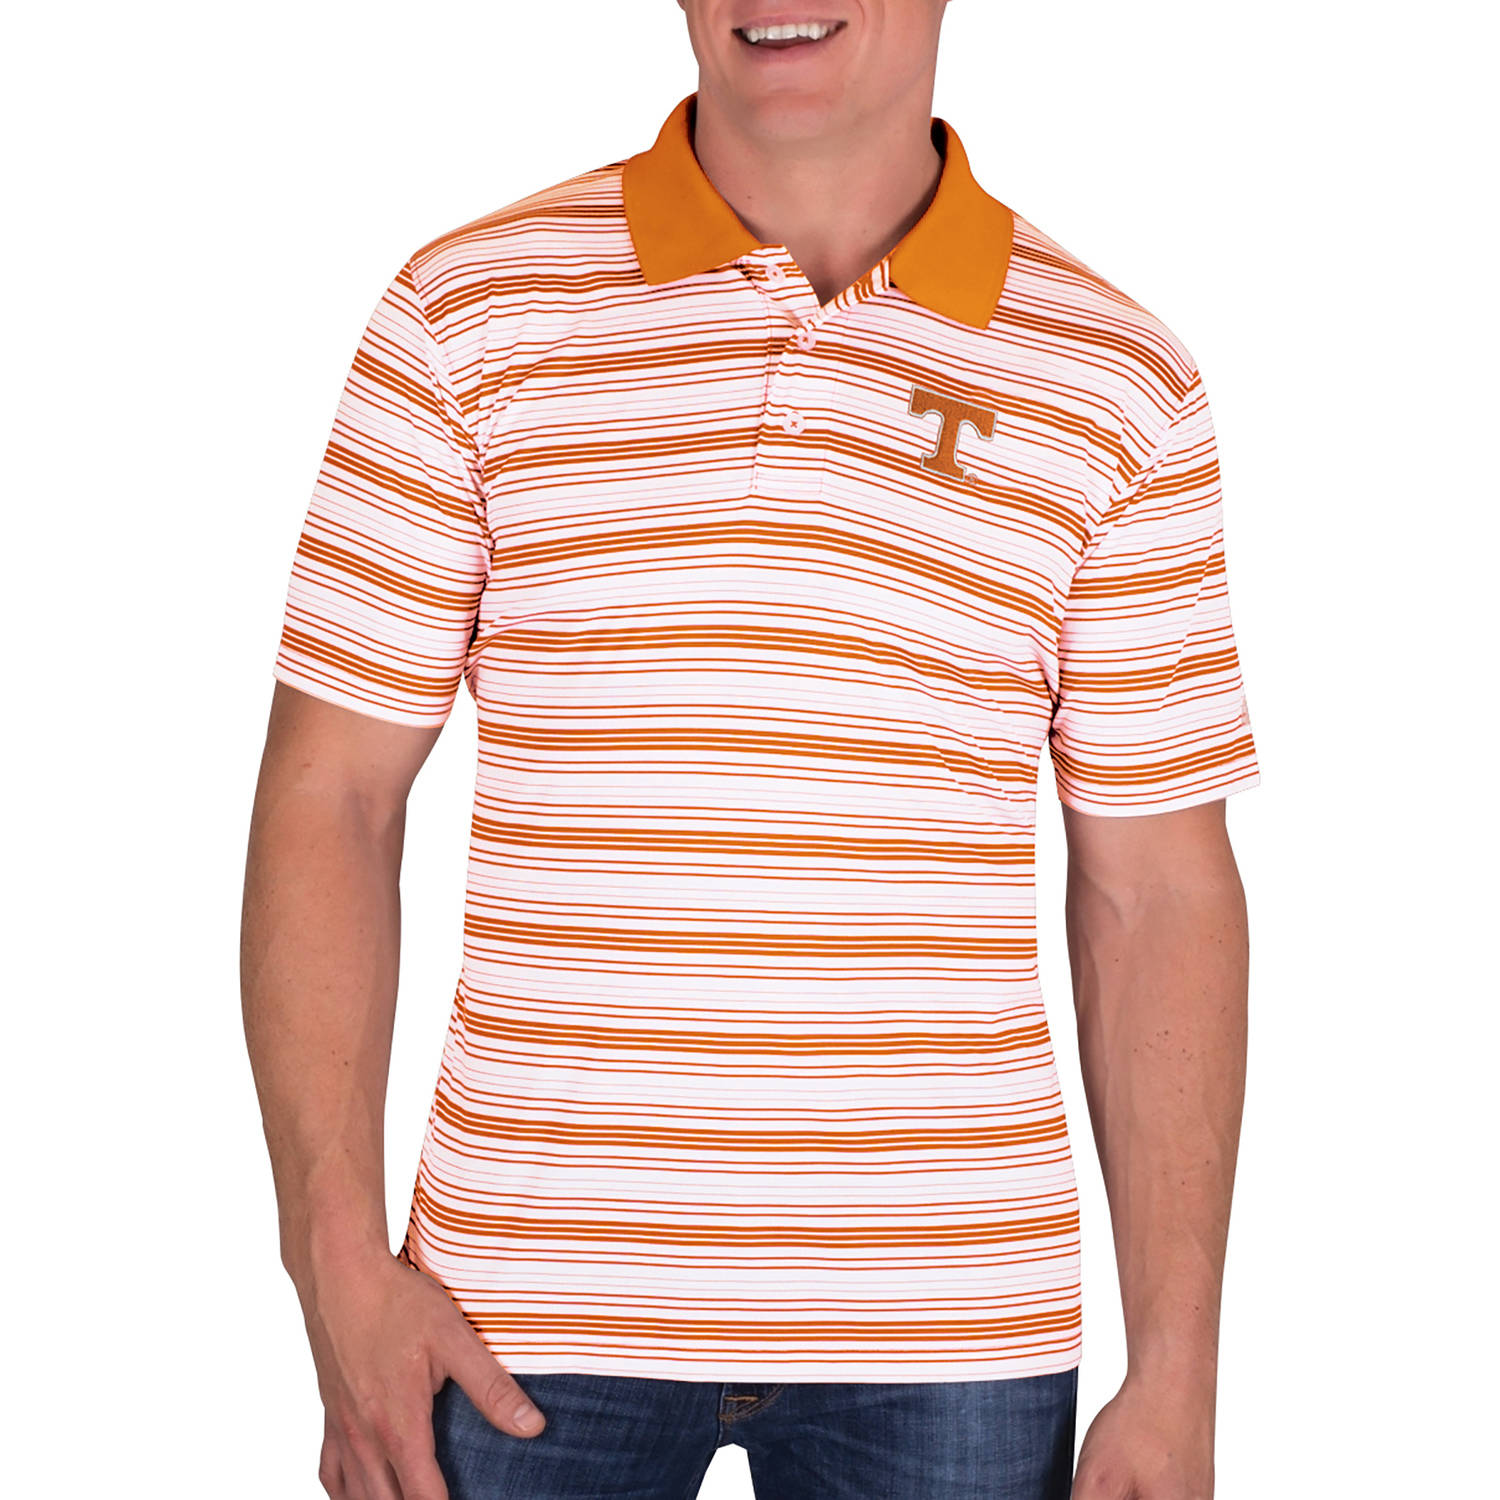 NCAA Tennessee Volunteers Men's Classic-Fit Striped Polo Shirt